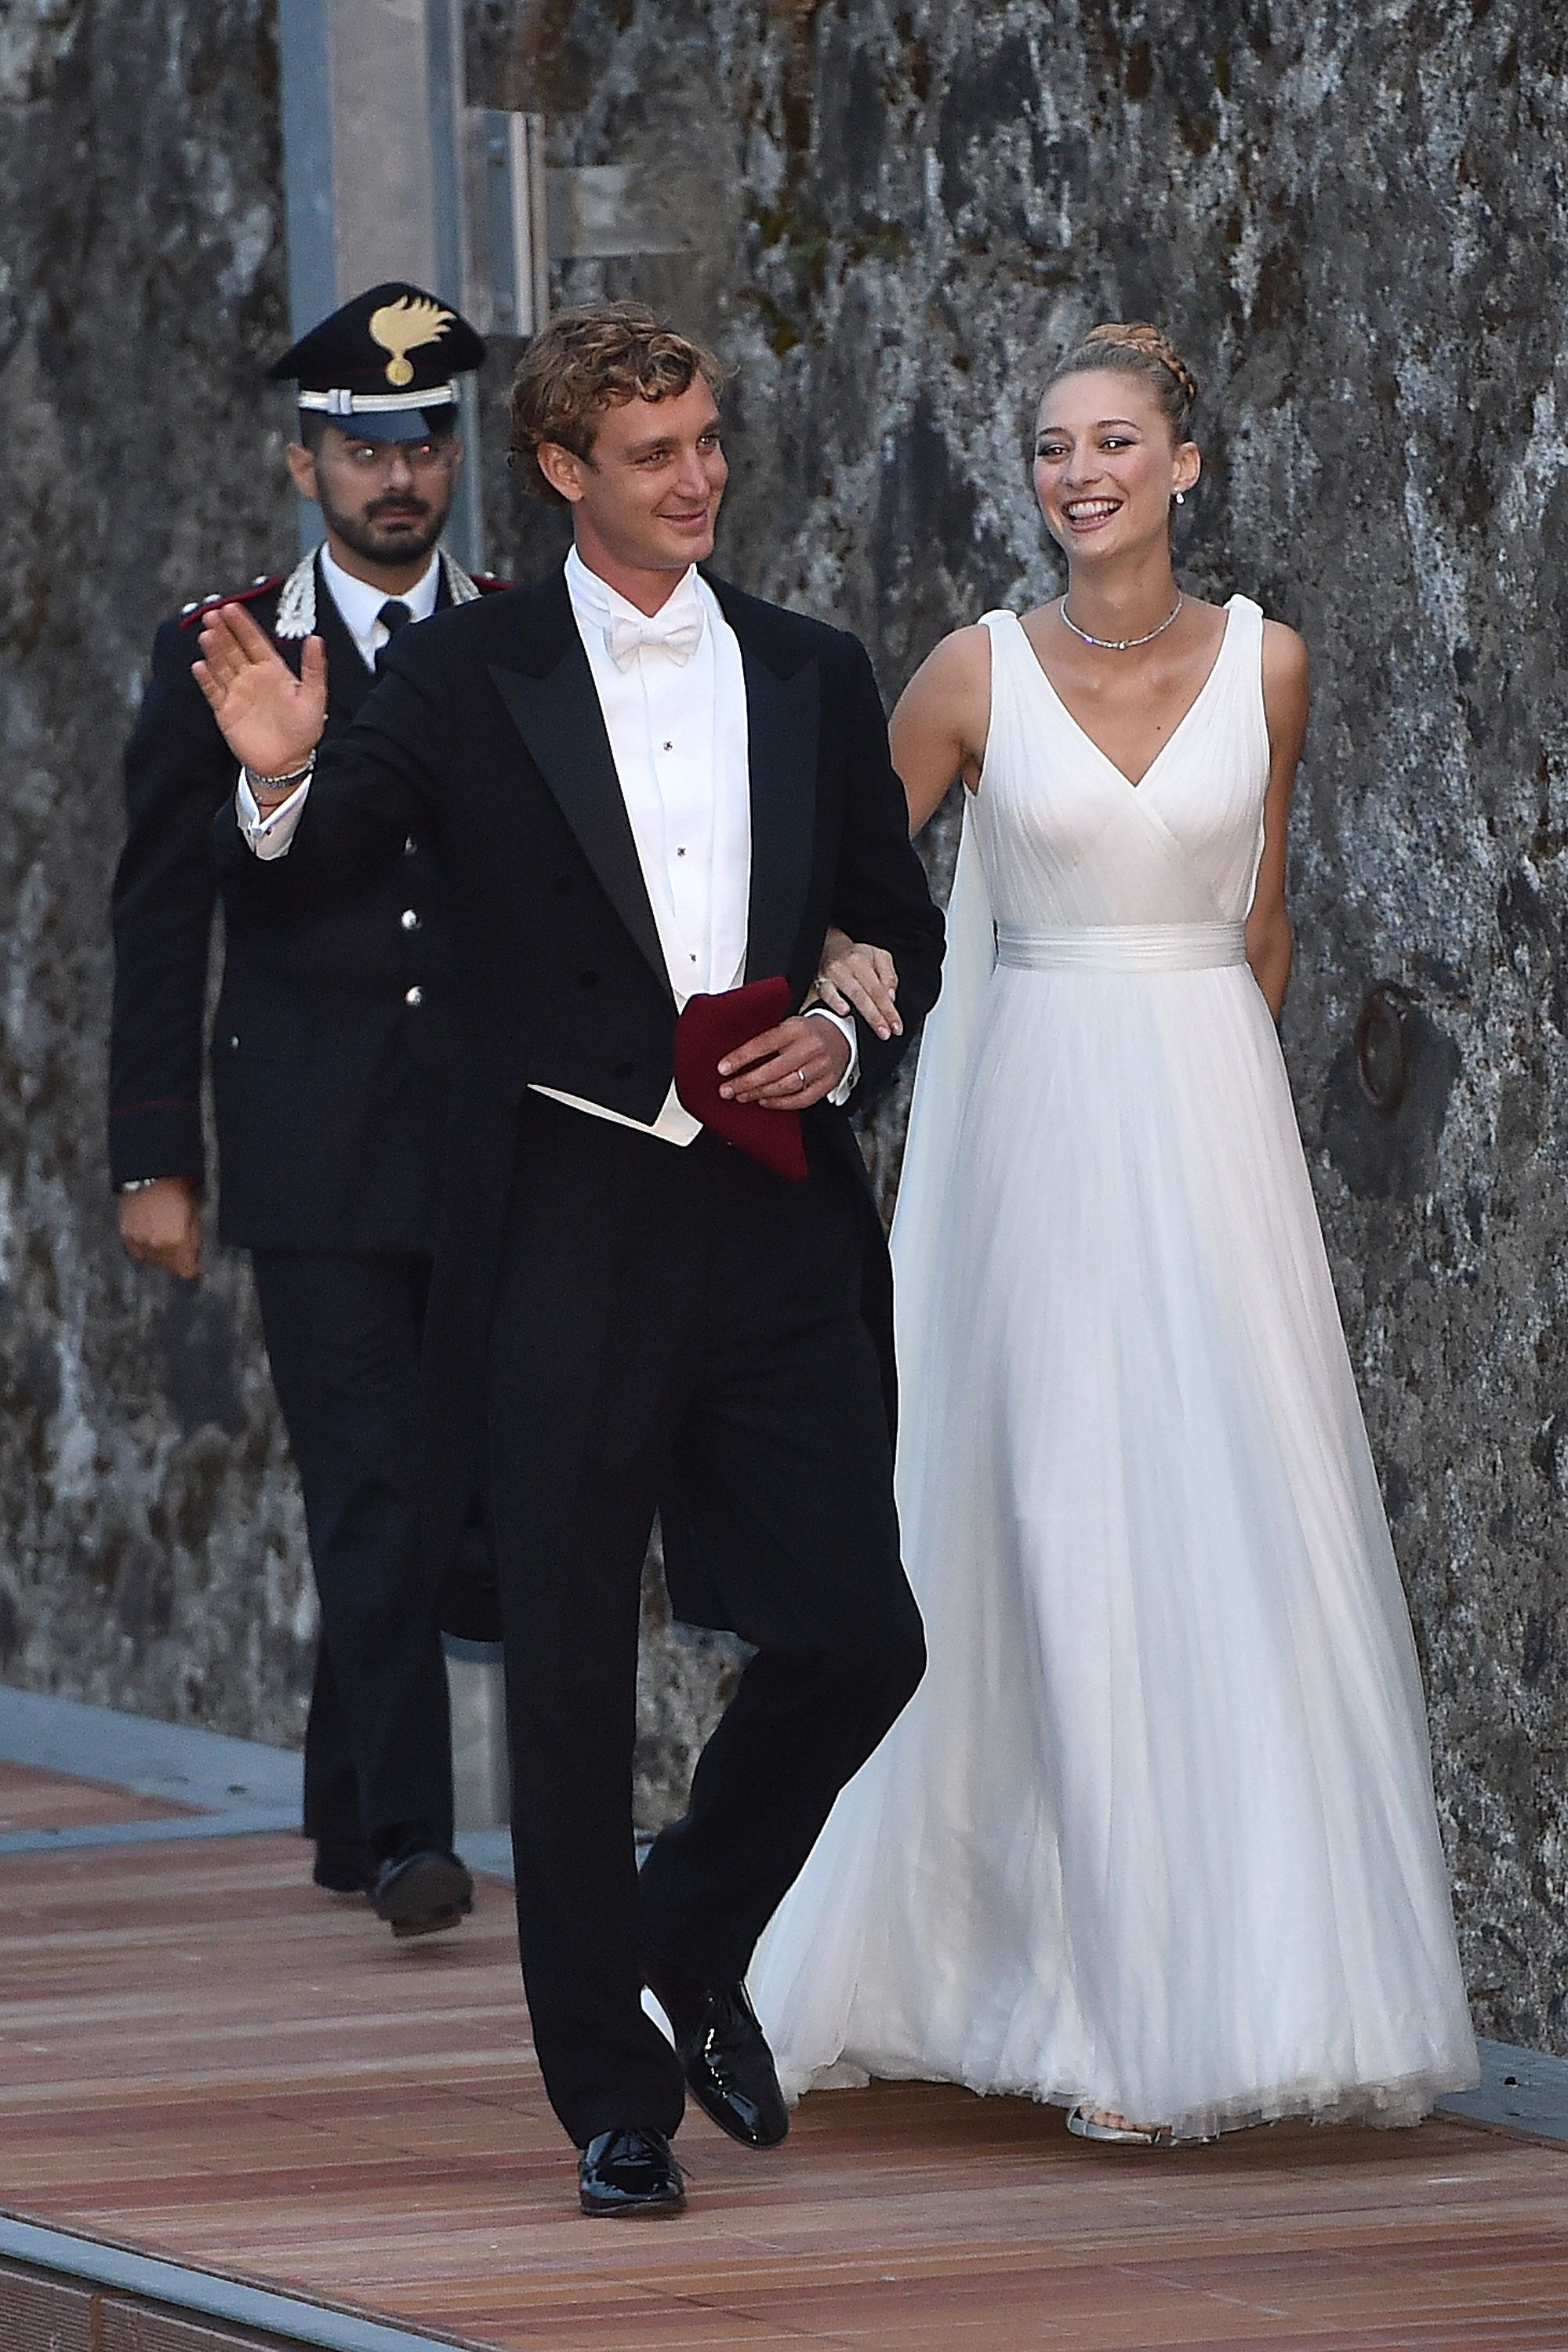 Monaco's Royal Wedding Gives Kate and Will a Run For Their